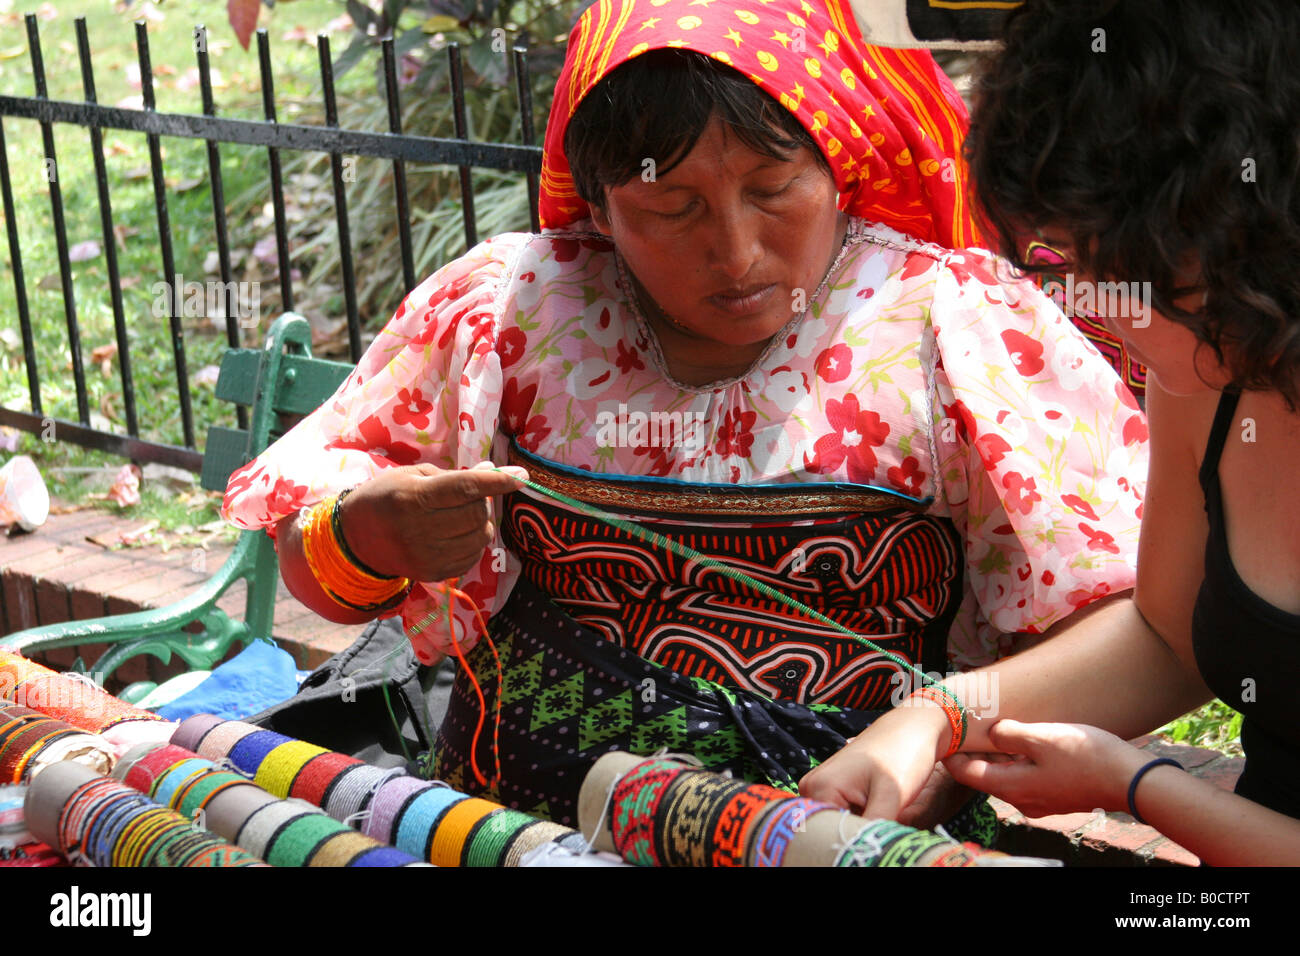 Kuna indian woman selling chaquiras at a street market of Panama City.  For Editorial Use Only. Stock Photo